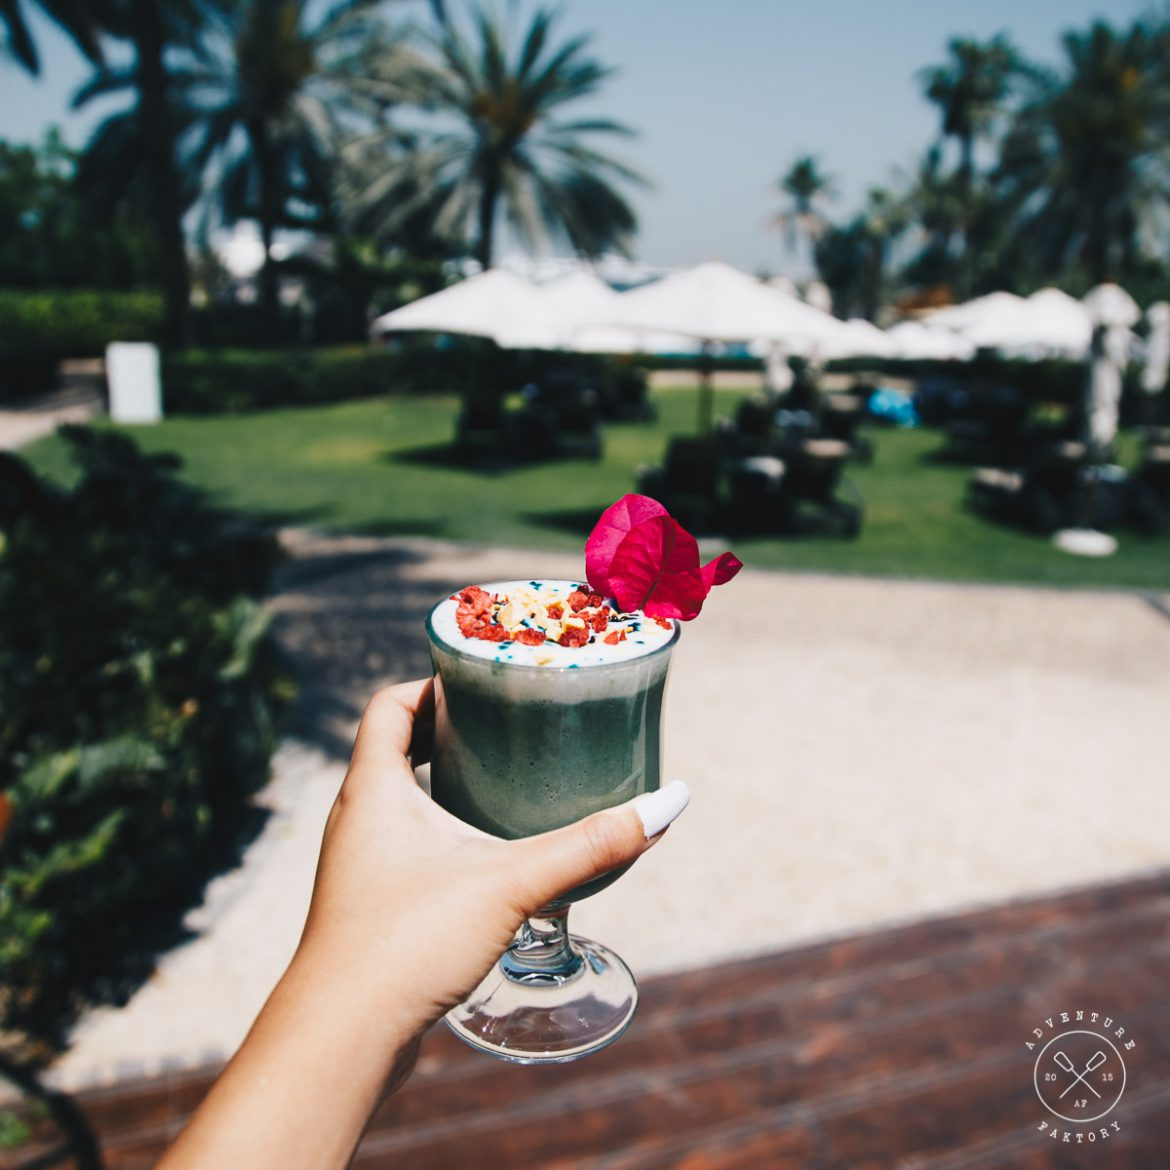 Healthy Morning Routine SUP and Breakfast at Gourmet by Kcal at Le Meridien Mina Seyahi